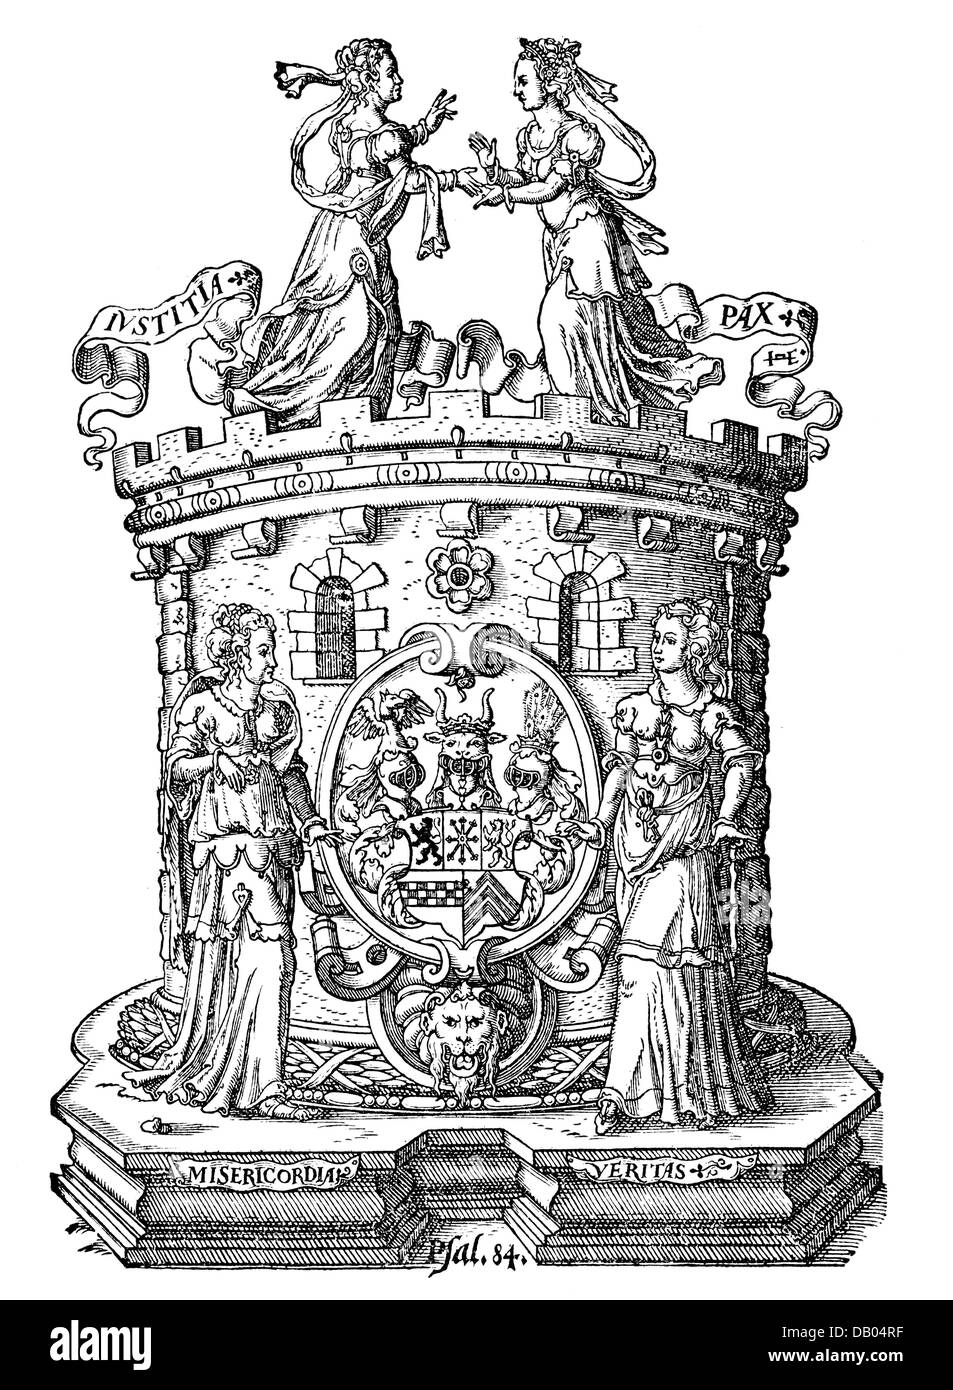 justice, allegories, Justitia and Pax, vignette to 'Rechtsordnung' of the Duke William V of Juelich-Cleves - Stock Image